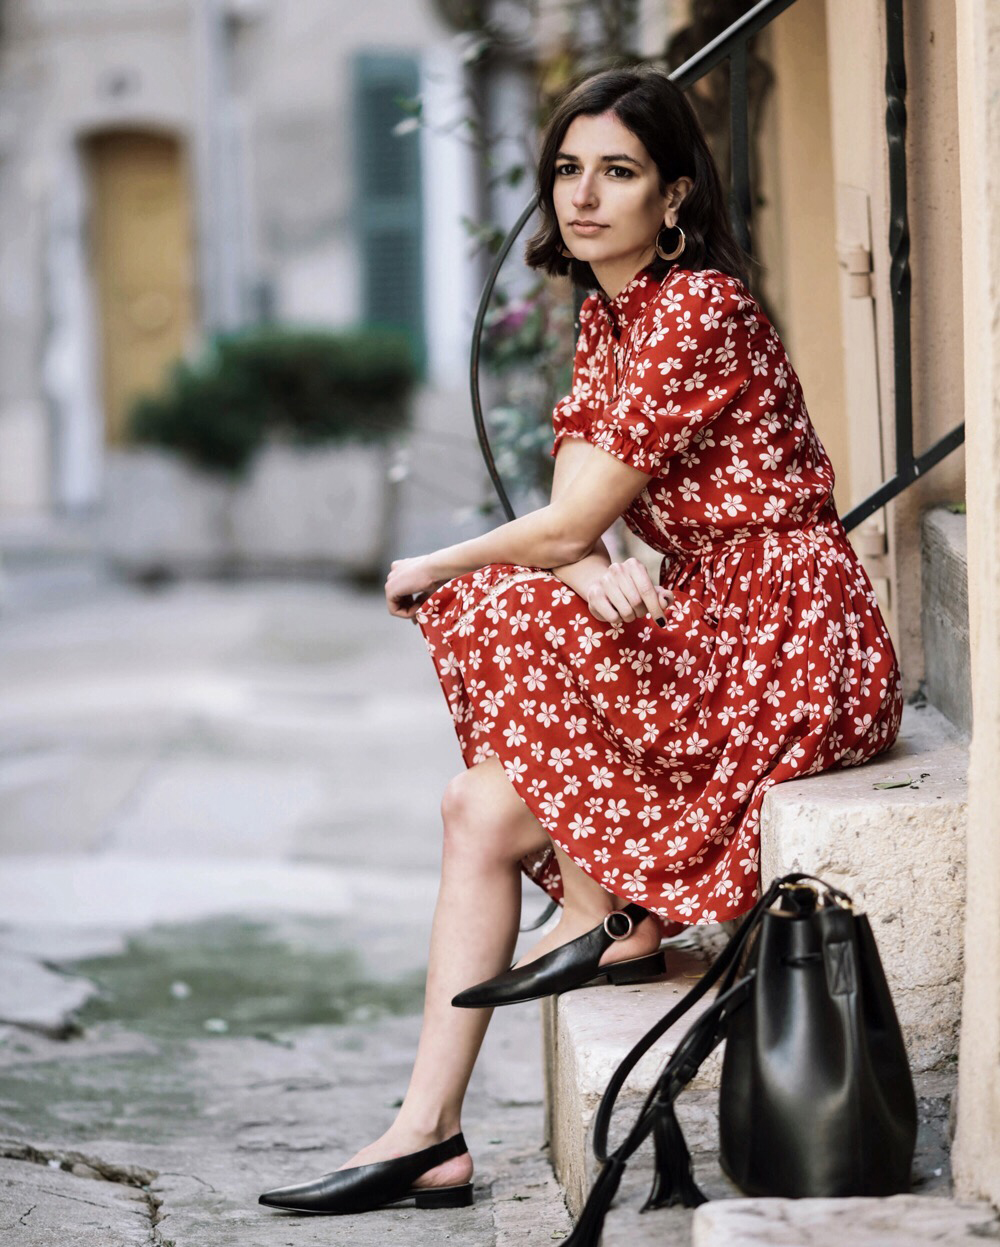 The Red Floral Dress Fashion Blogger Street Style French Kooples Marks And Spencer Sling Back Shoes Black Mango Bucket Bag Summer Outfit